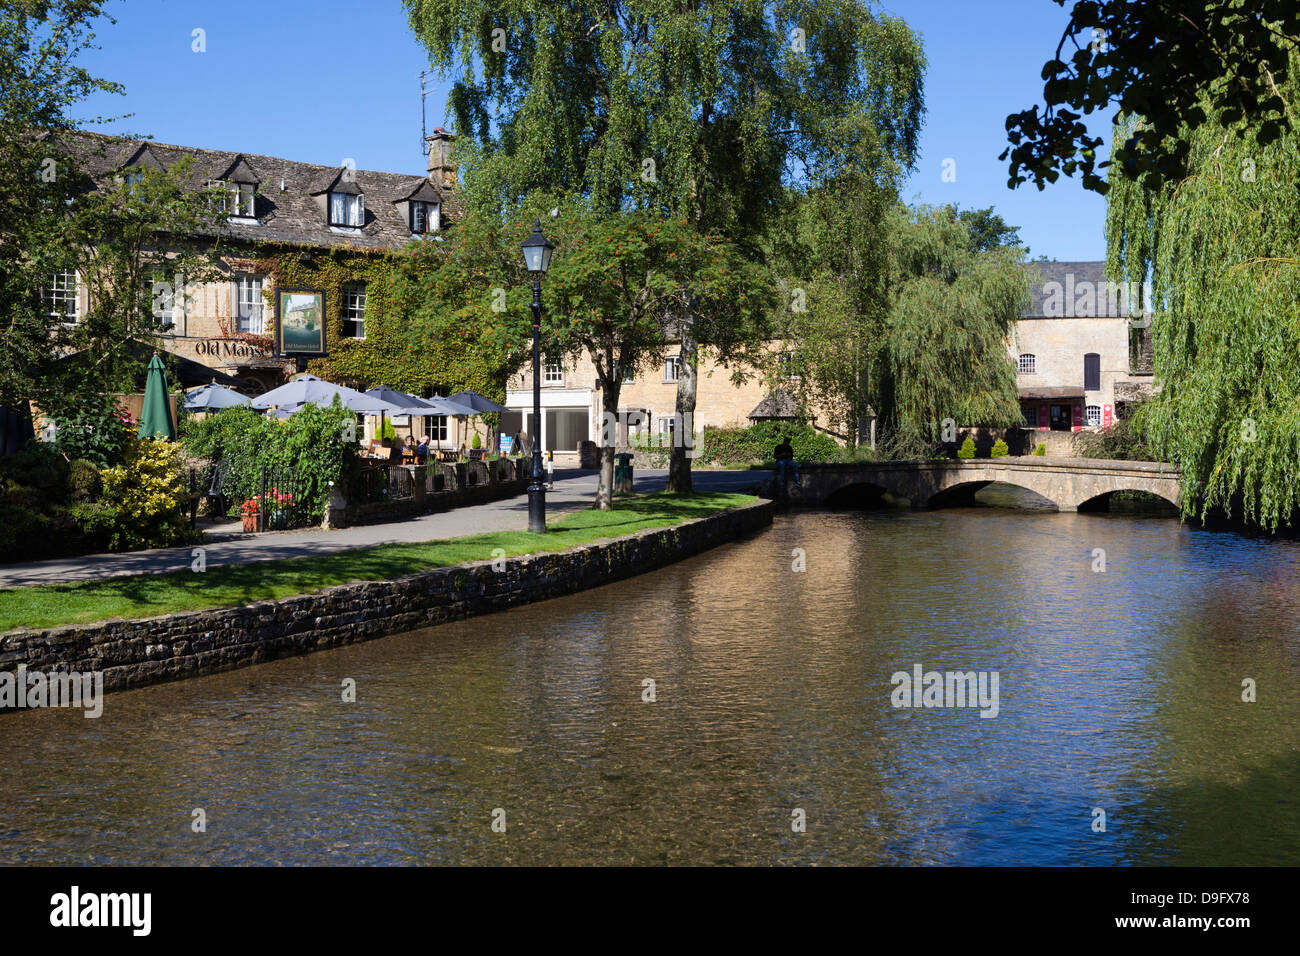 View along the River Windrush, Bourton-on-the-Water, Gloucestershire, Cotswolds, England, UK - Stock Image